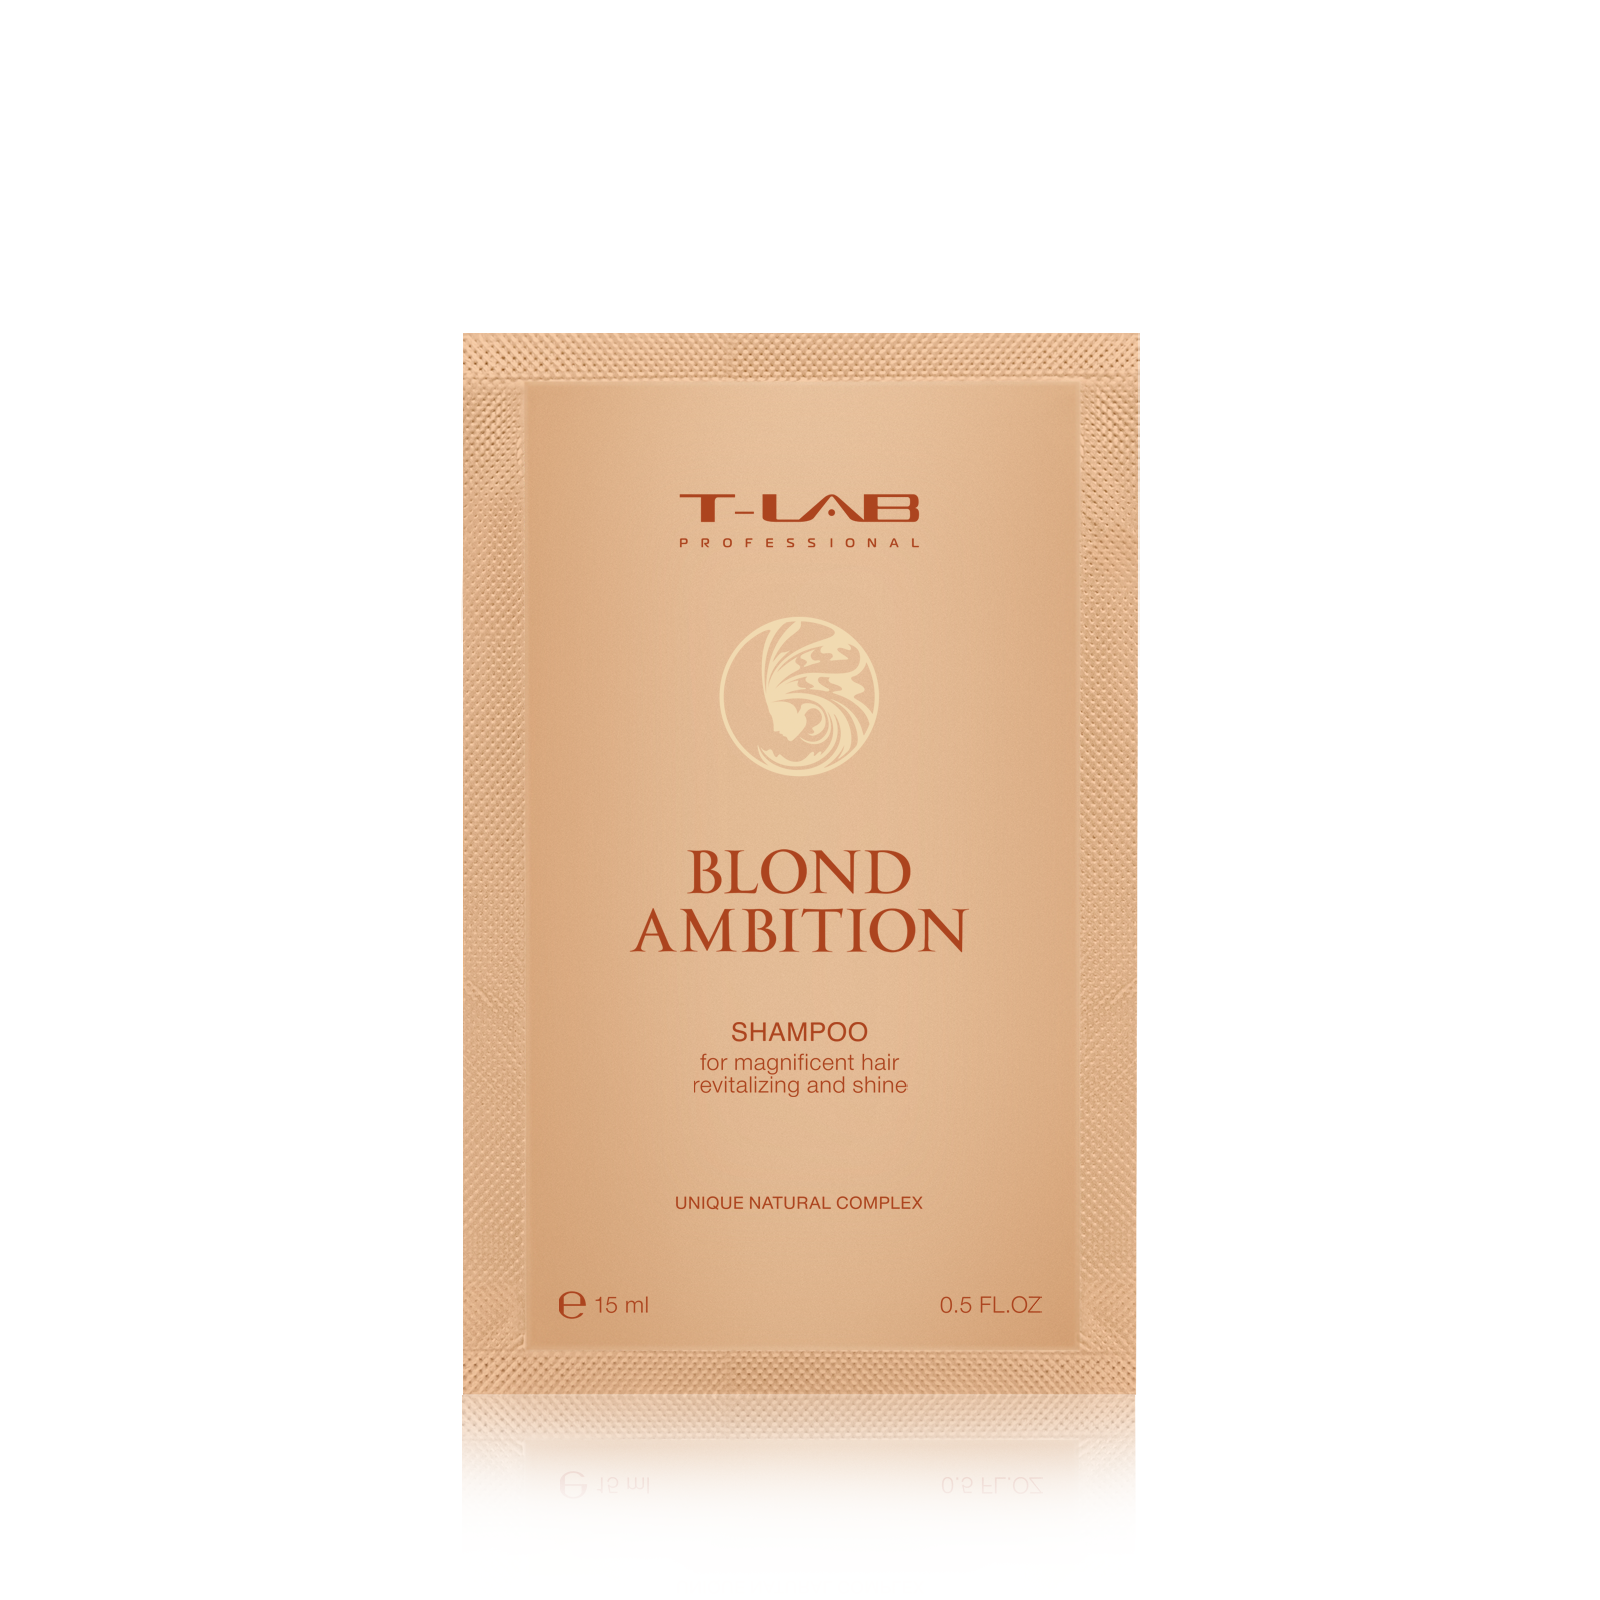 BLOND AMBITION SHAMPOO 15 ml